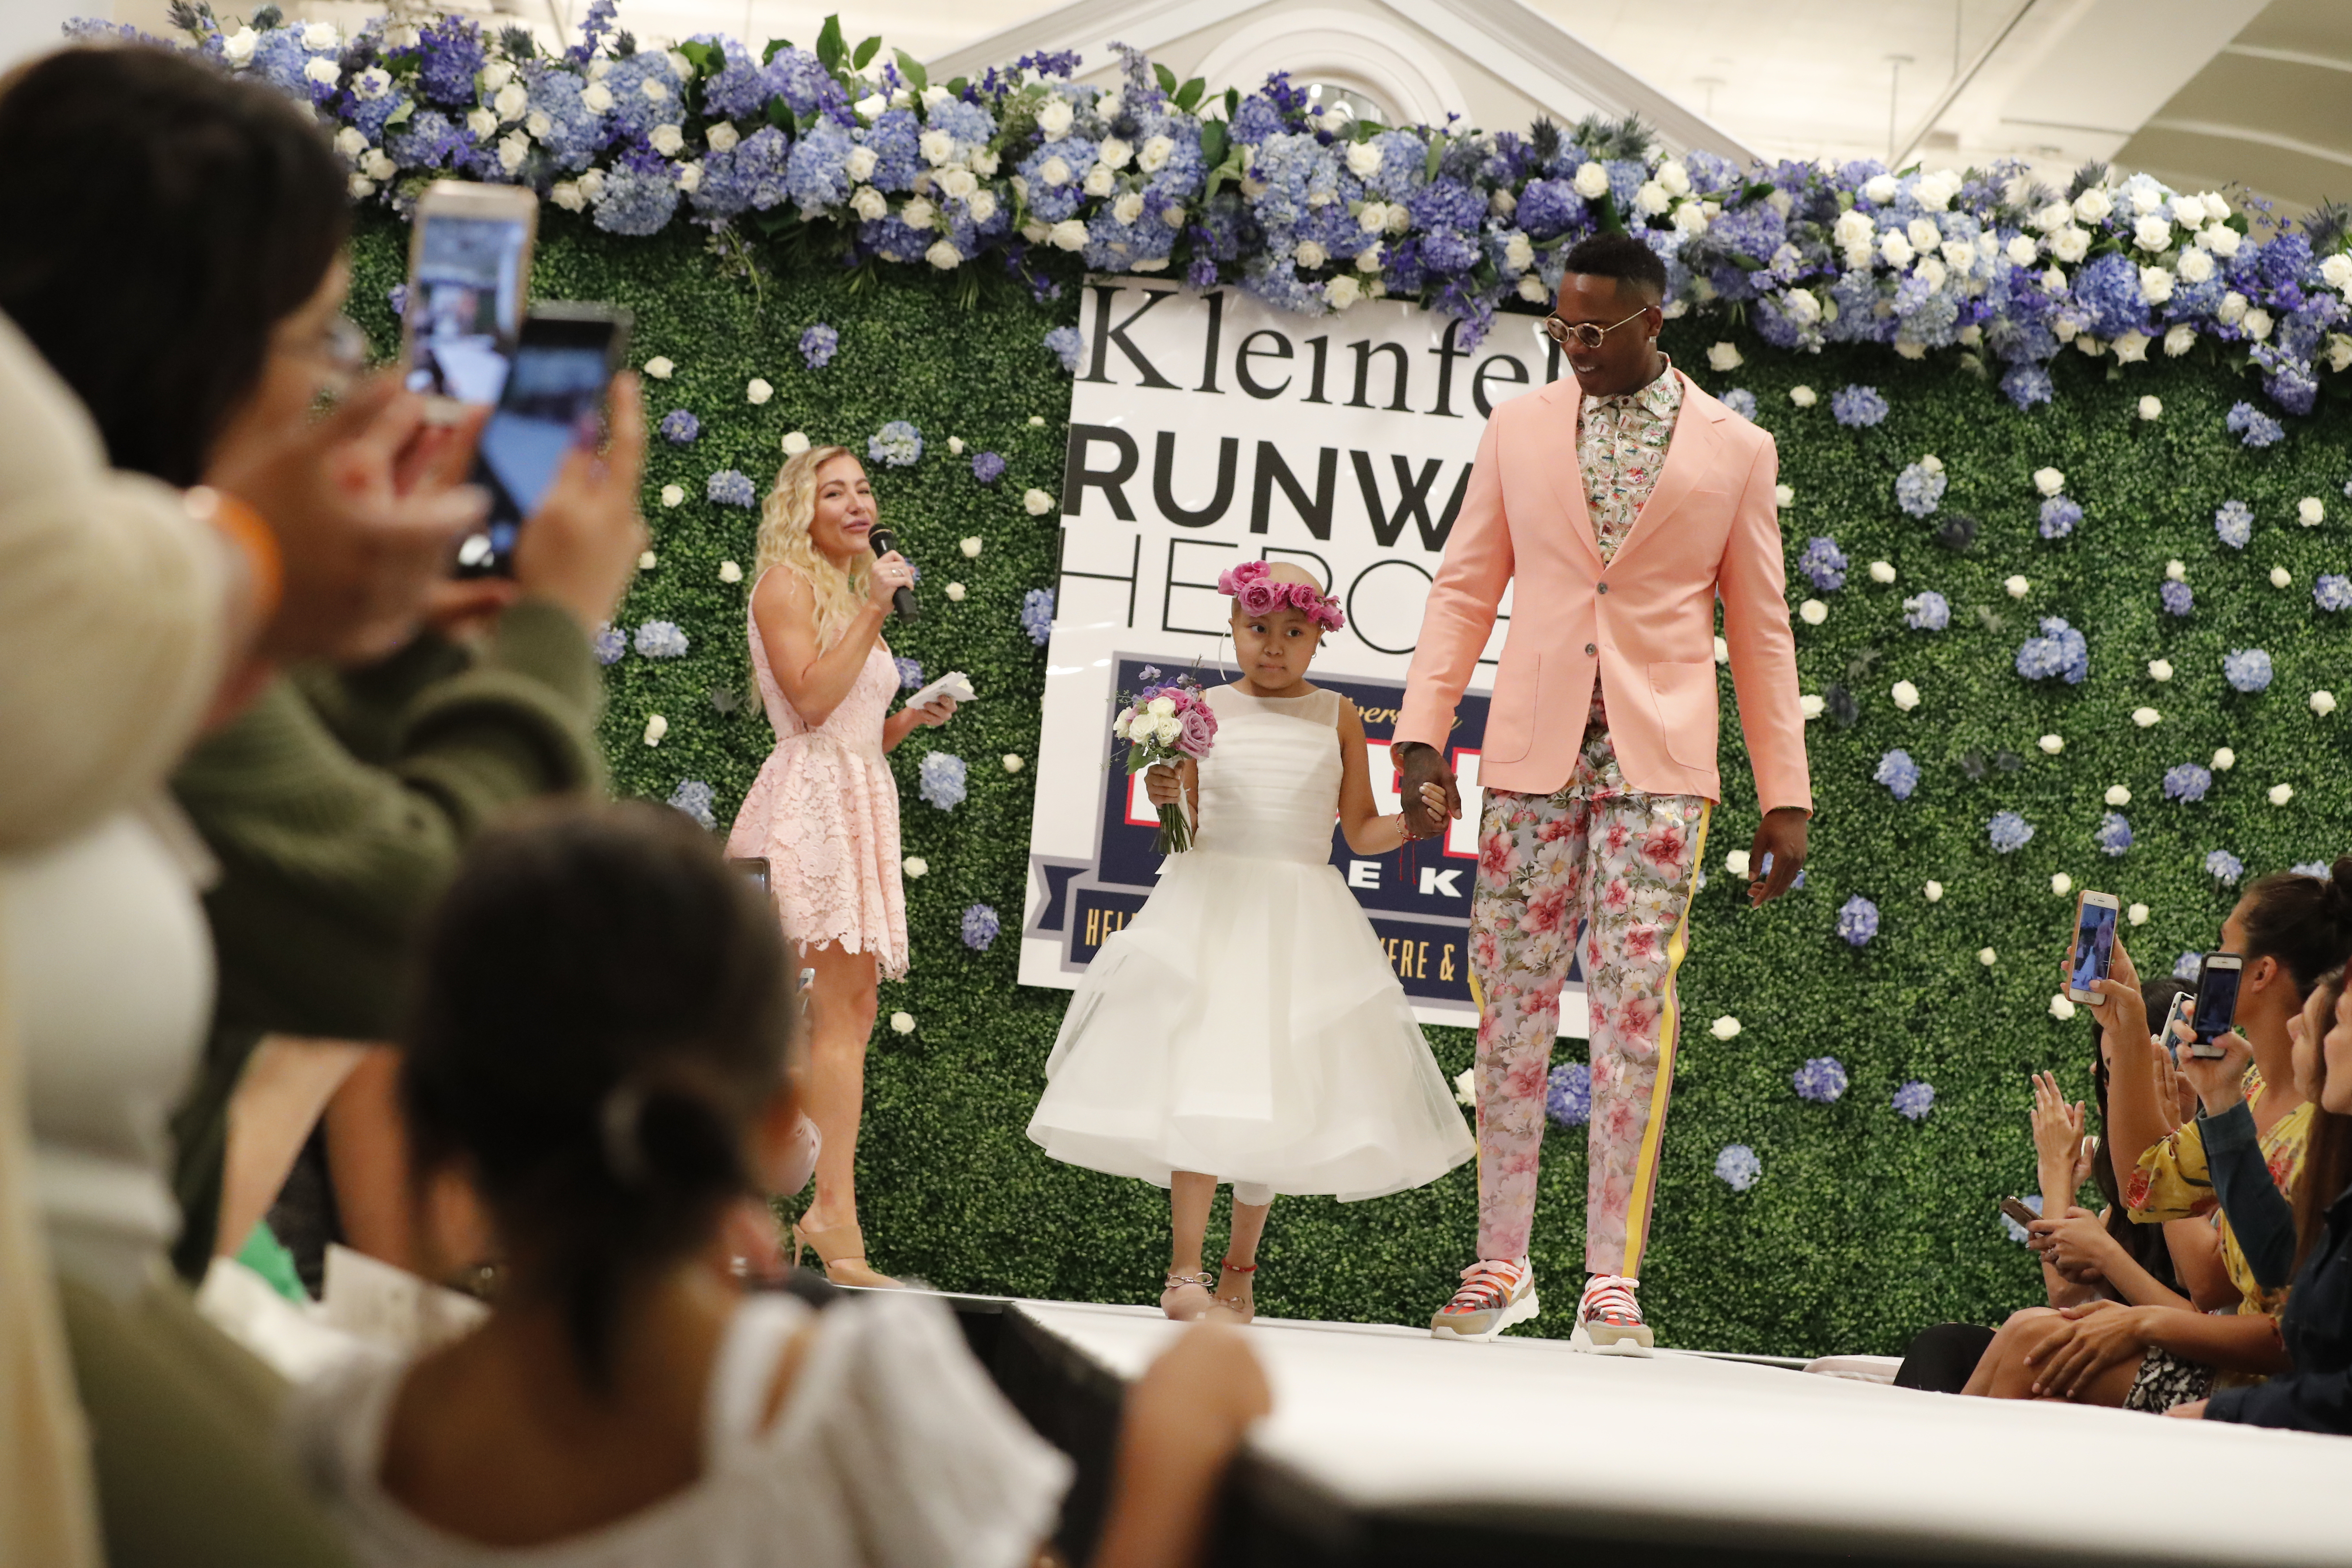 Yankees General Manager Brian Cashman and Yankees players Didi Gregorius, Aroldis Chapman, Luis Severino, Clint Frazier, Kendrys Morales and Domingo Germán will join Runway Heroes founder Rachel Goldman to surprise children with cancer and their families for a fashion show at the iconic Kleinfeld Bridal. The Yankees will help the children prepare for their big day in the spotlight and then escort them down the runway. Fashion designer Hayley Paige will emcee the show.